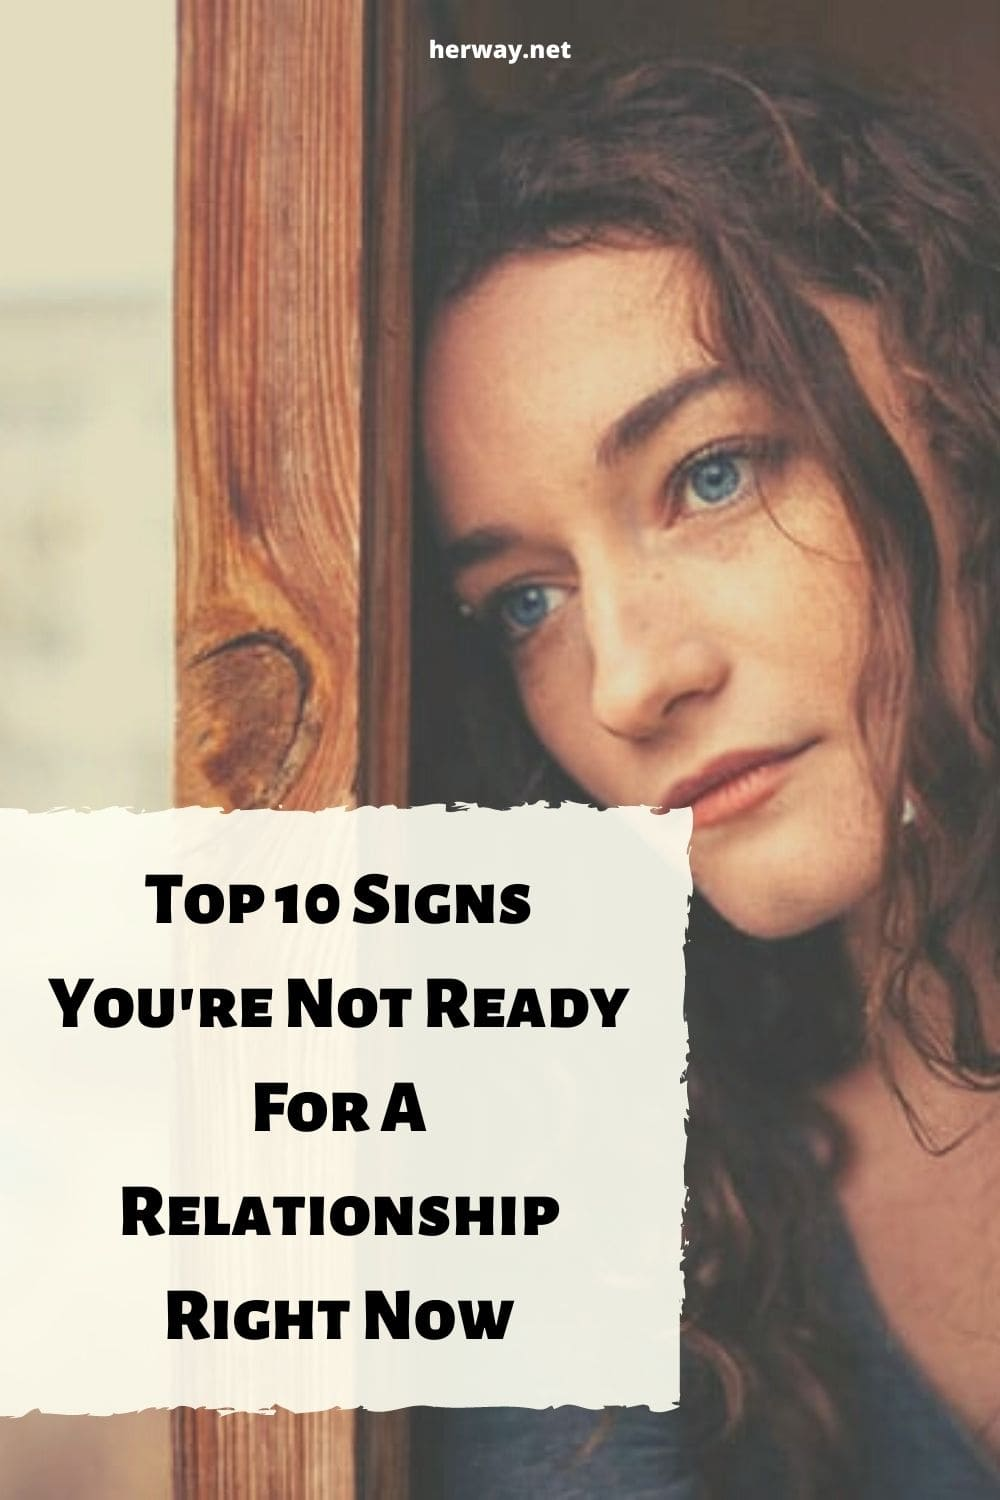 Top 10 Signs You're Not Ready For A Relationship Right Now